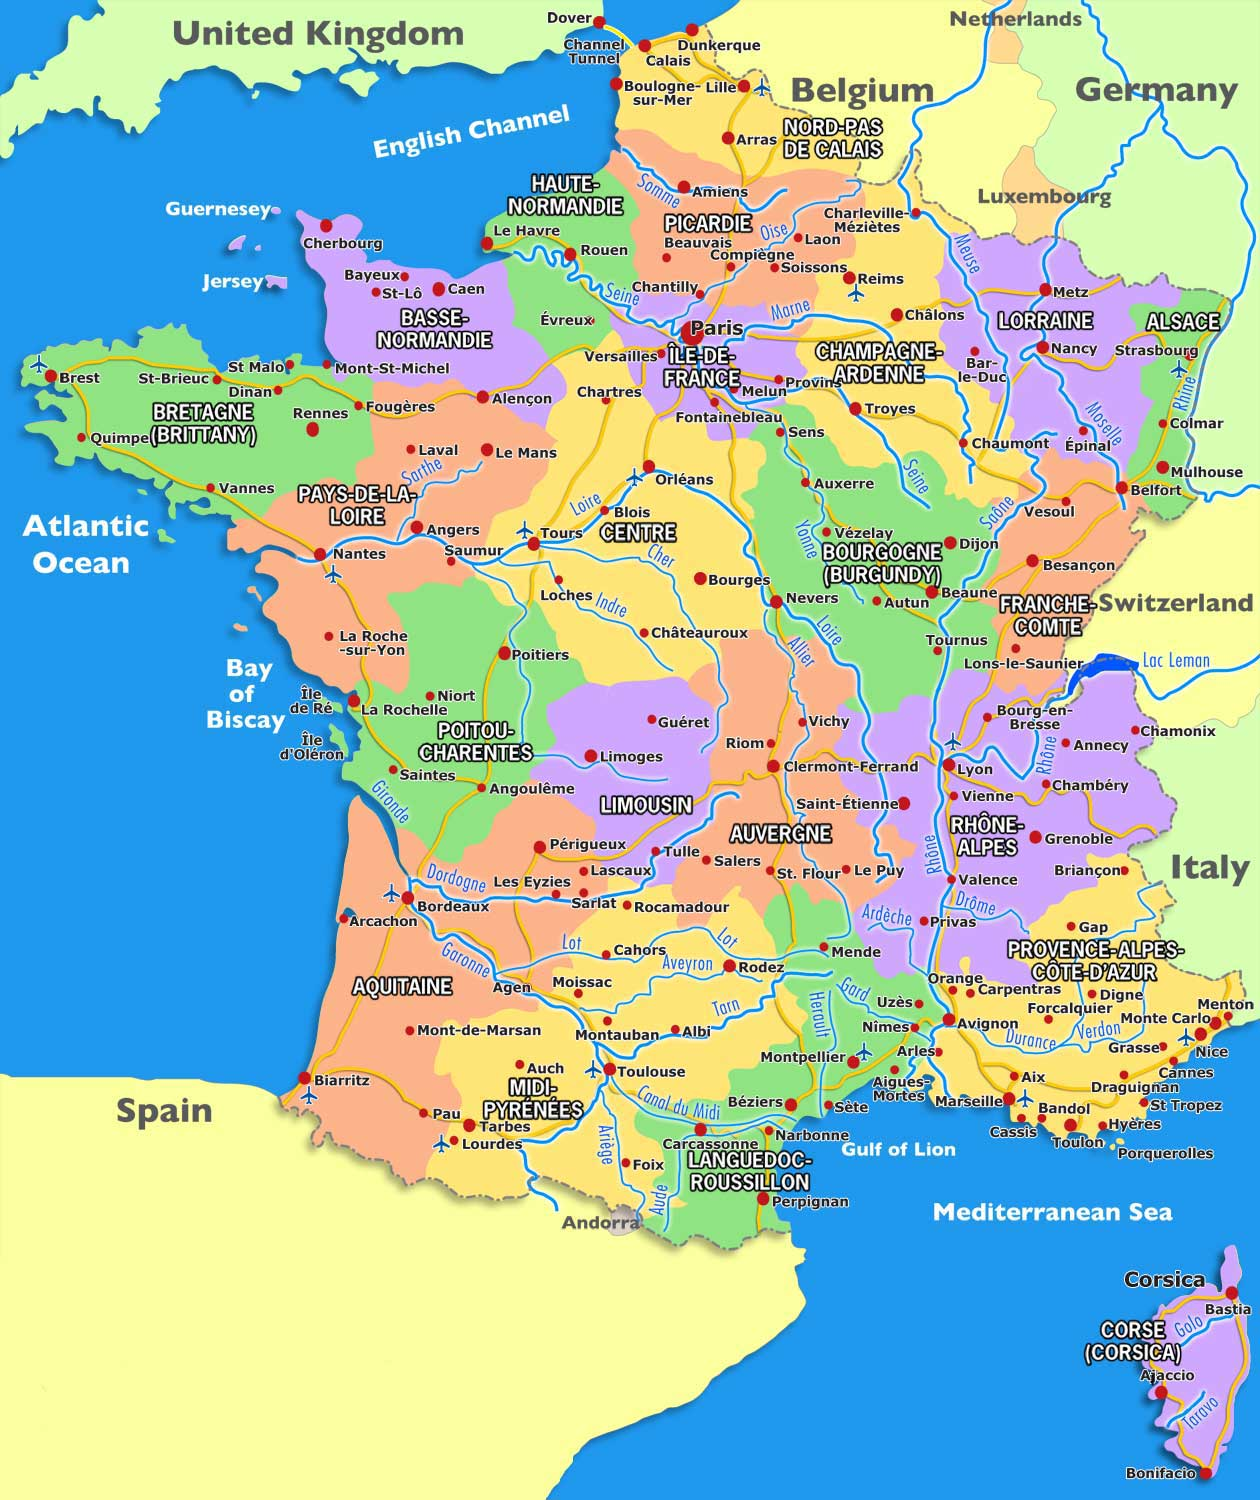 Breaking news and world news from france 24 on business, sports, culture. Map of France » Vacances - Guide Voyage